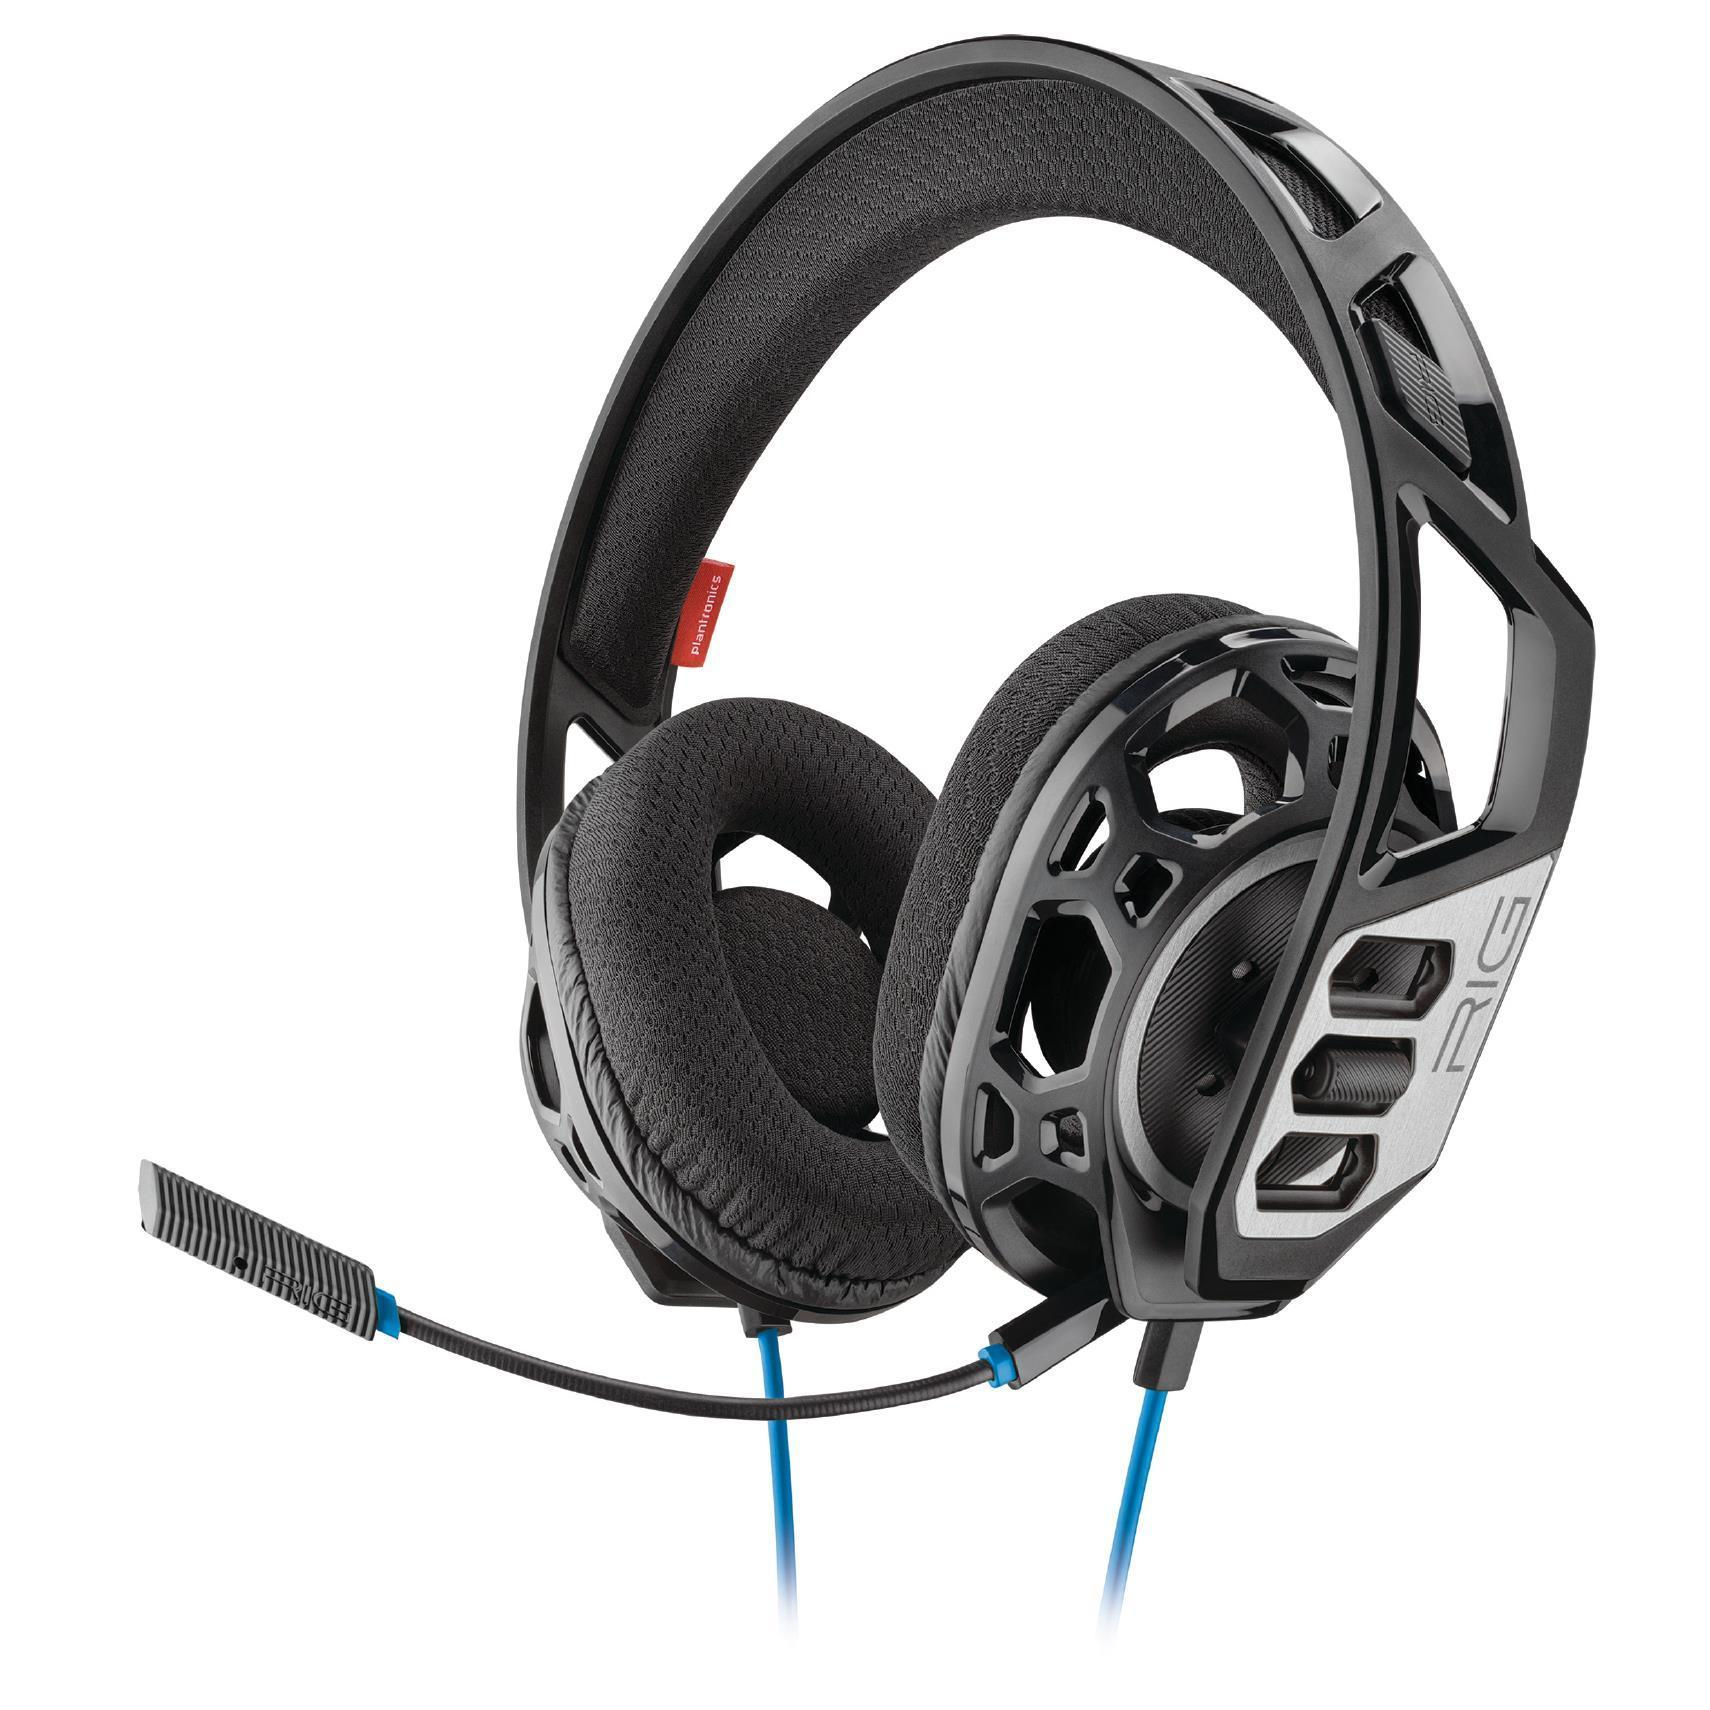 RIG 300HS Stereo Gaming Headset for PlayStation 4